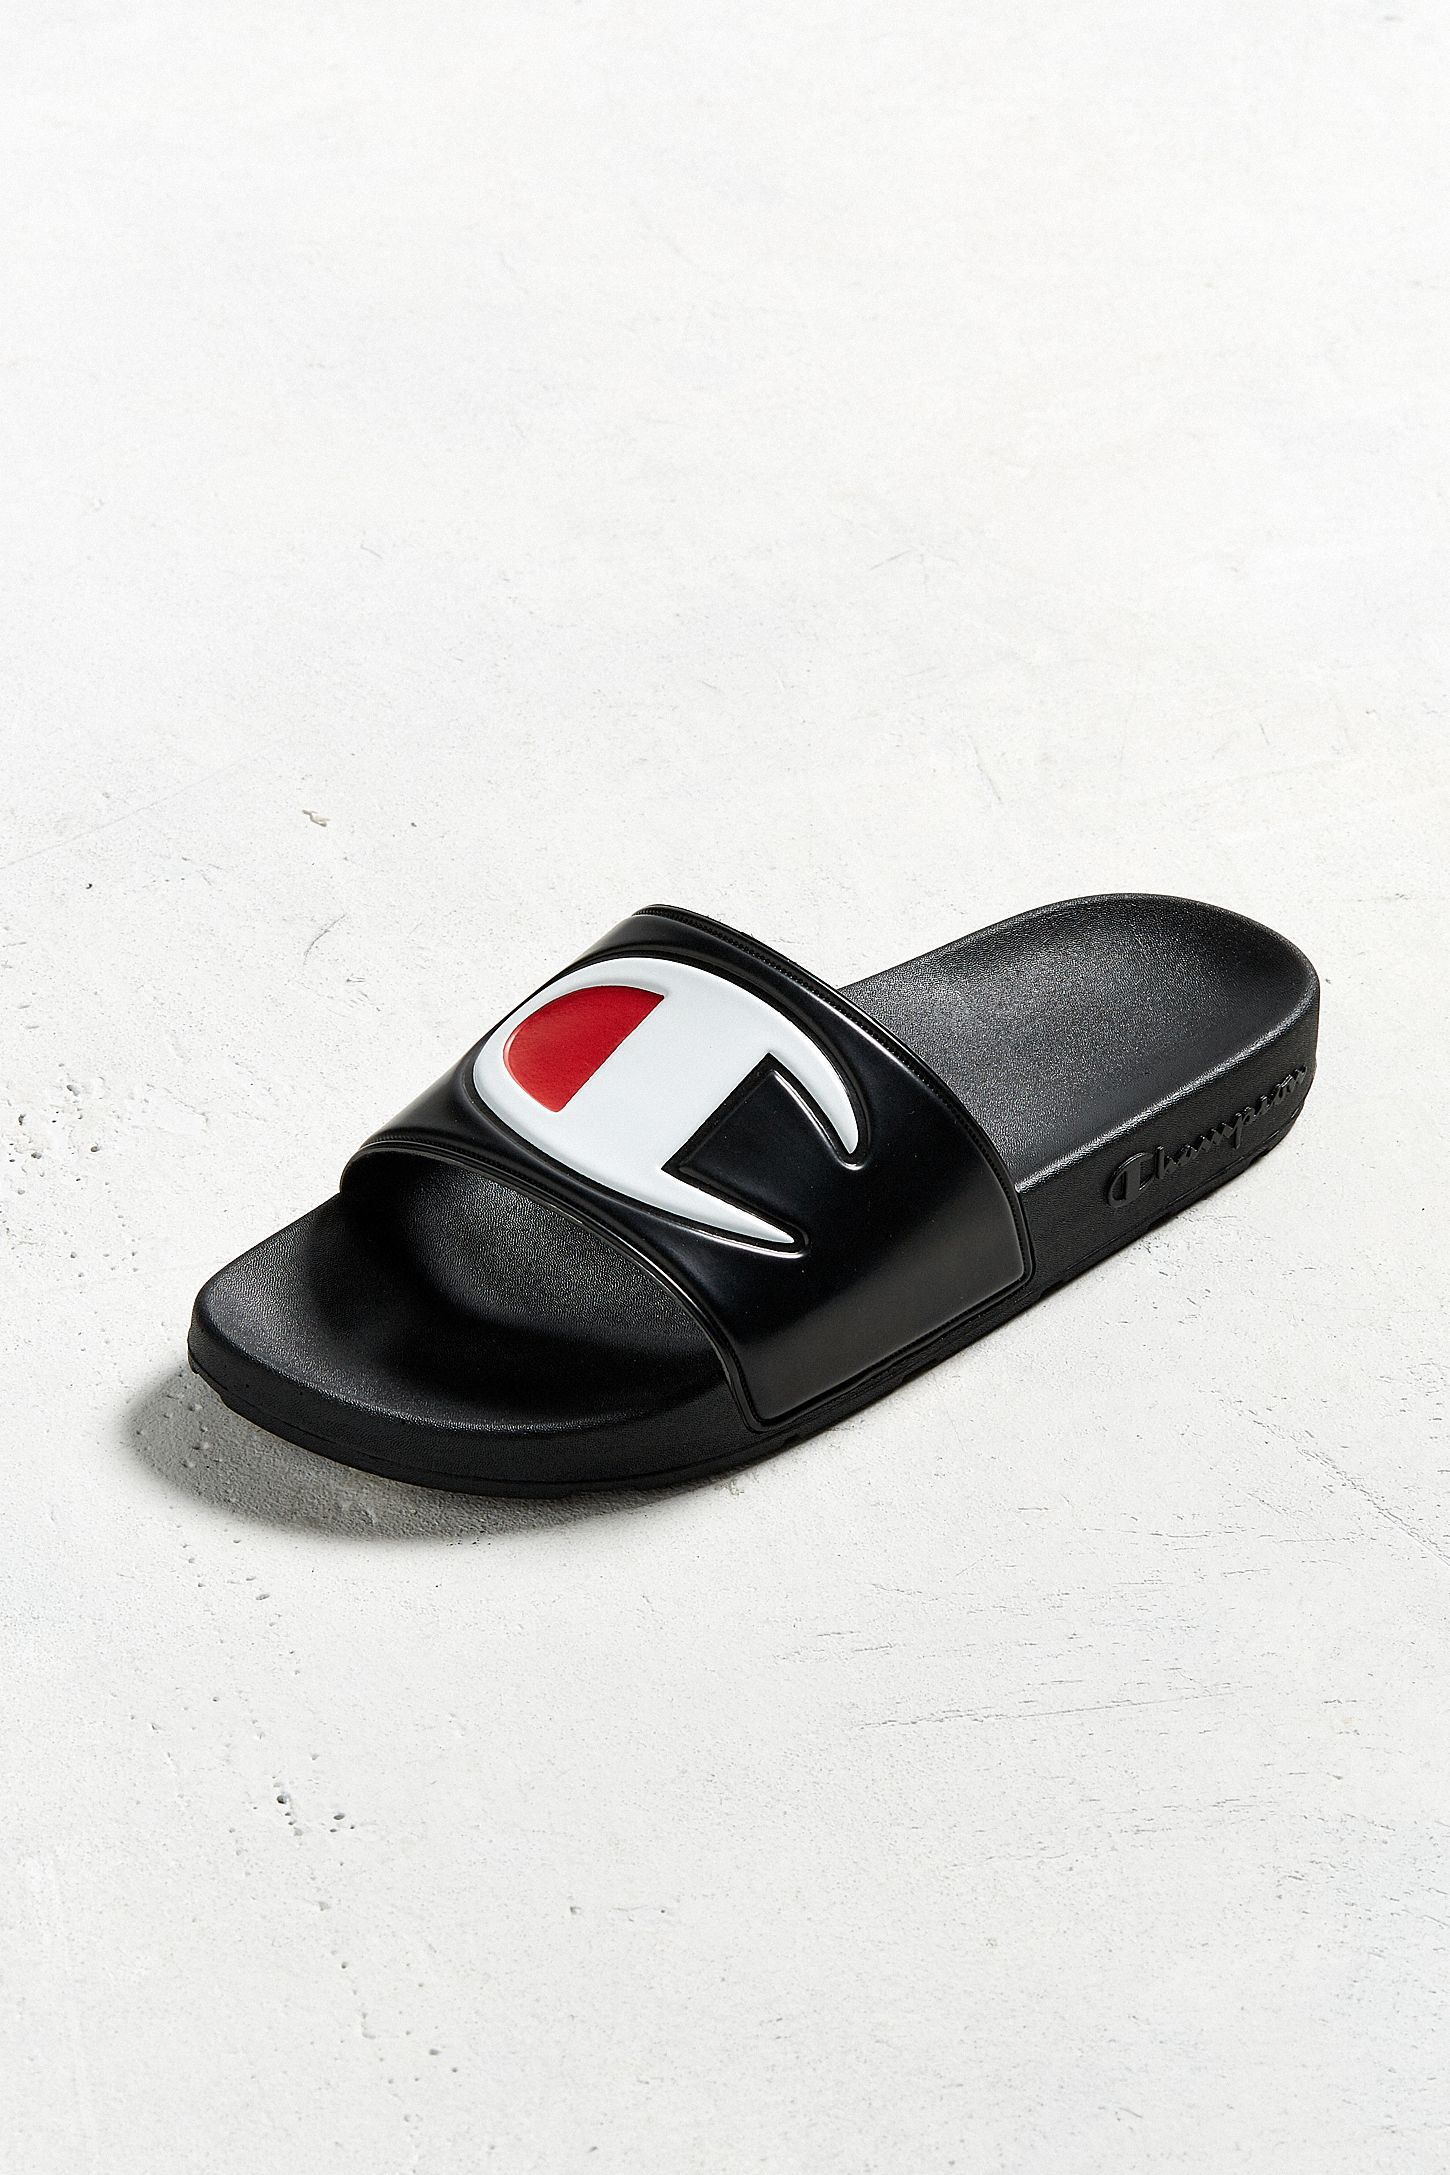 cfda71961cce30 Champion Big C Logo Slide Sandal